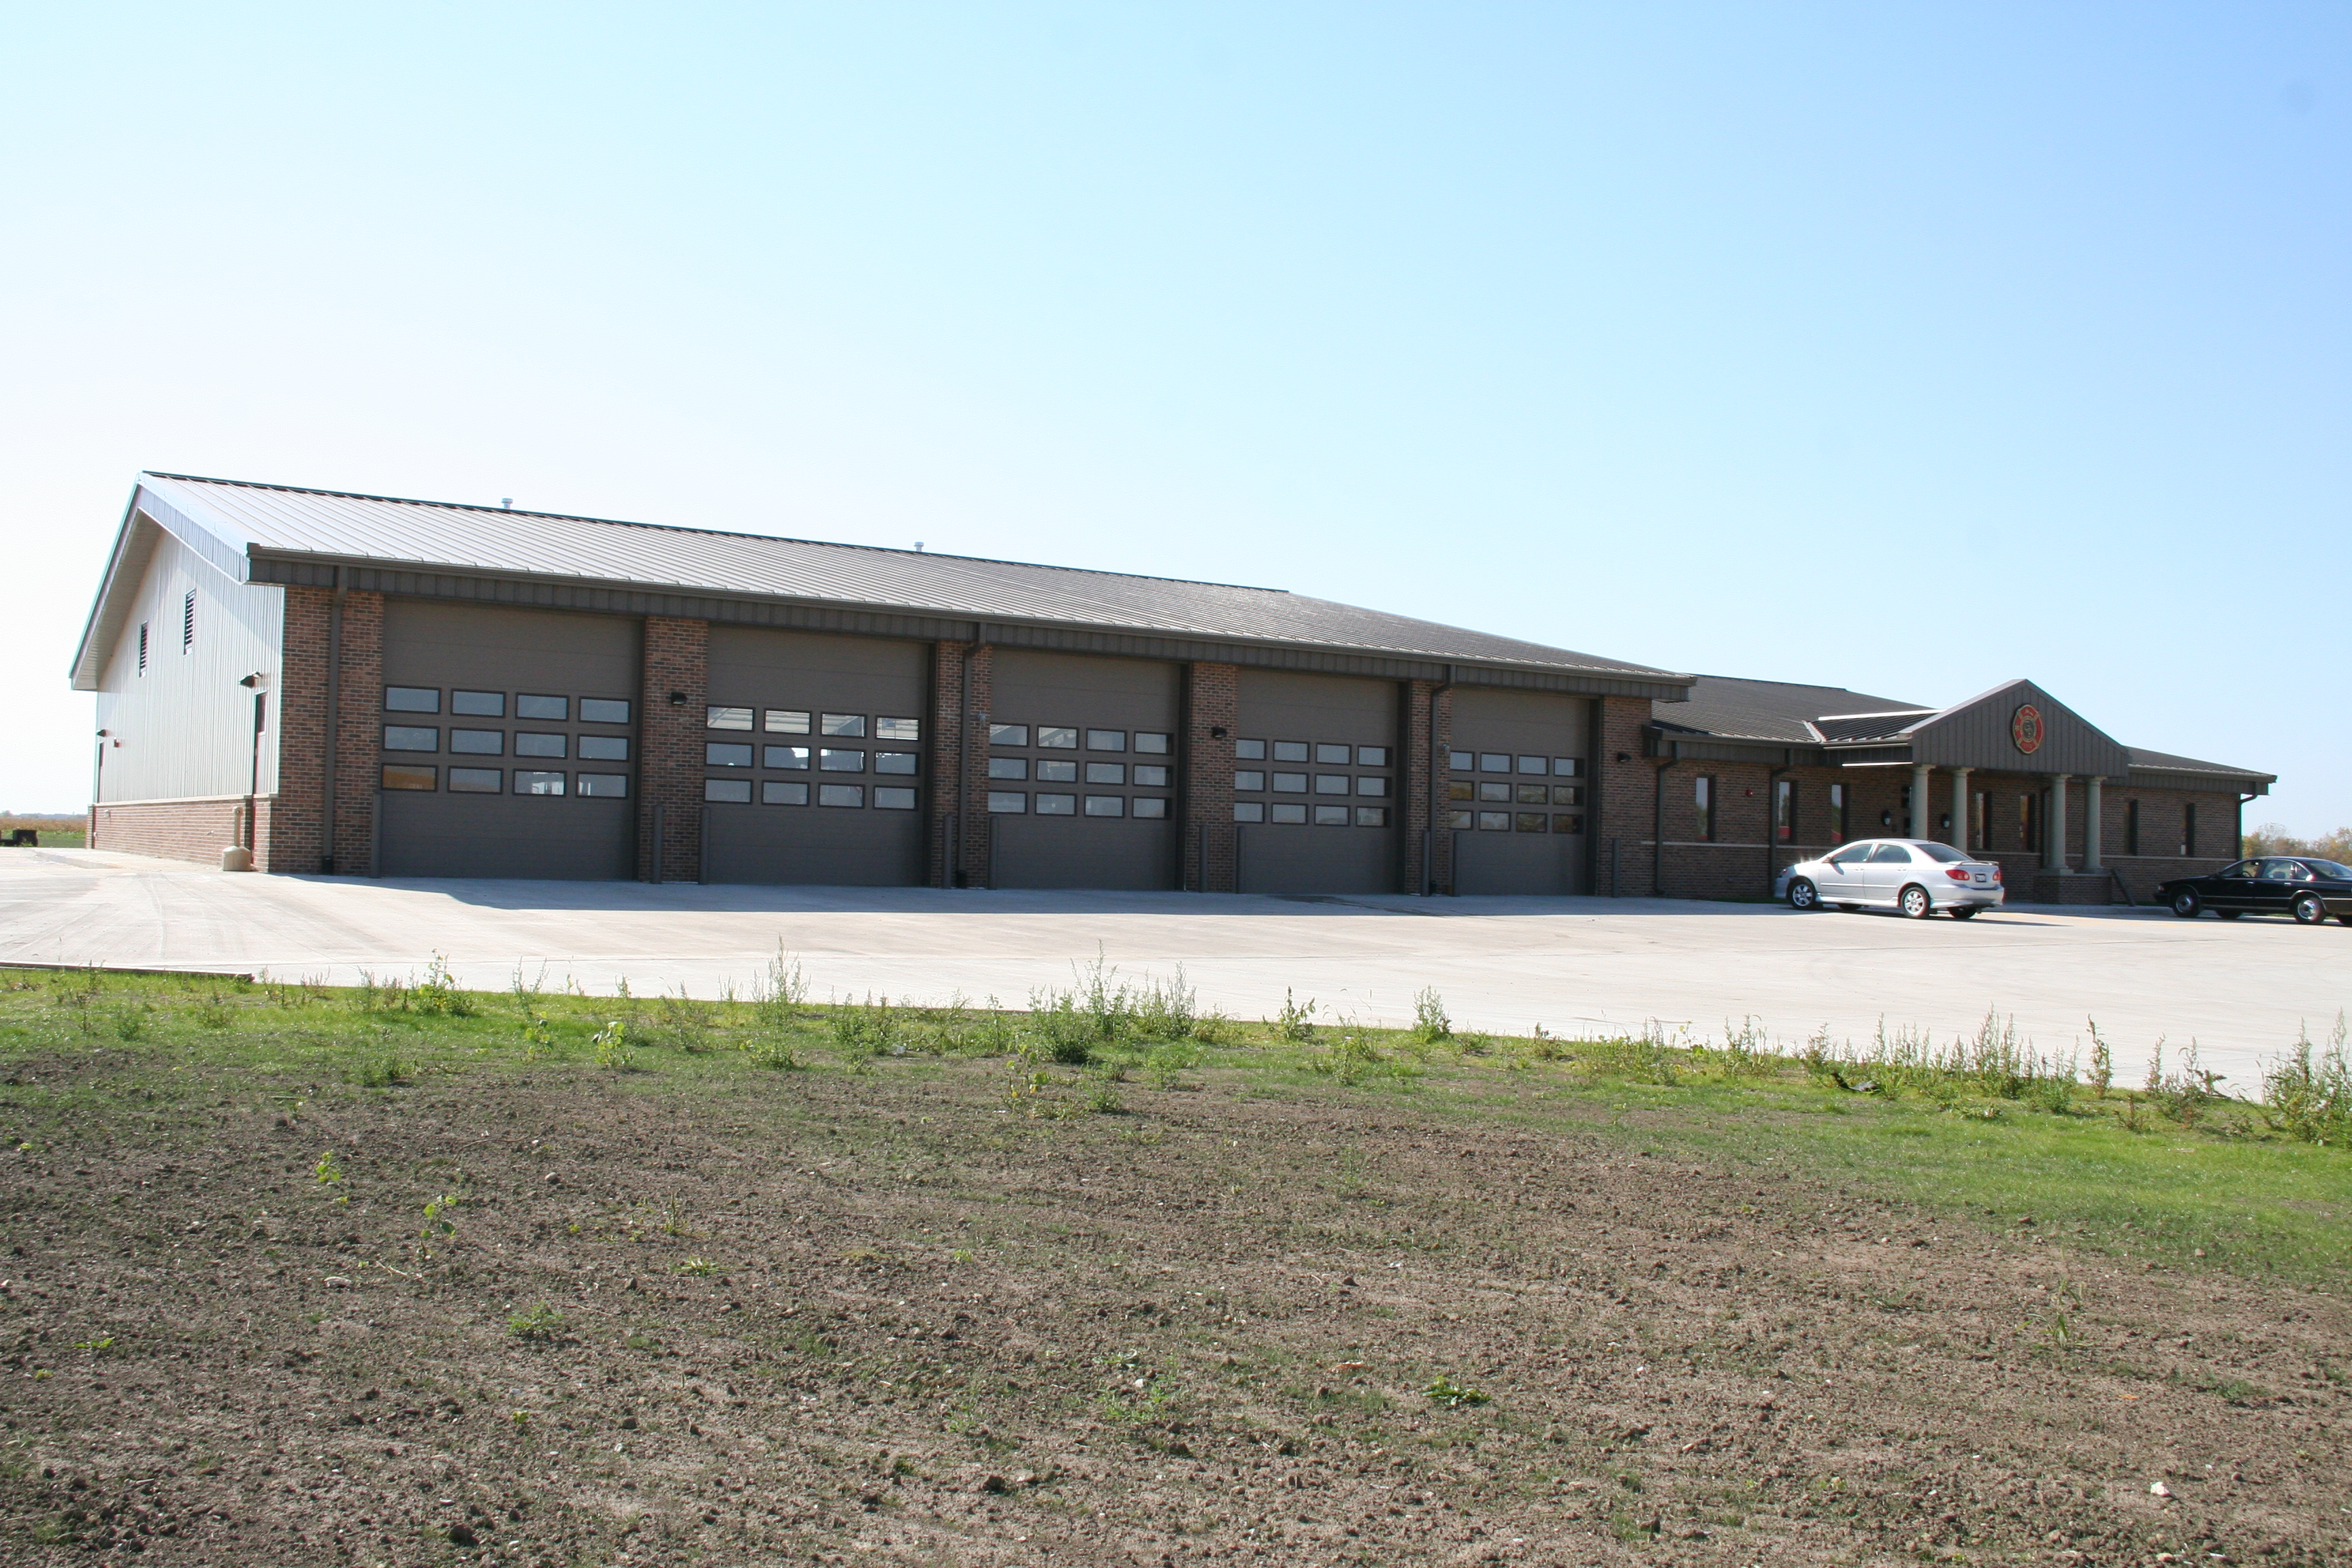 Grant Park Fire District Station 1